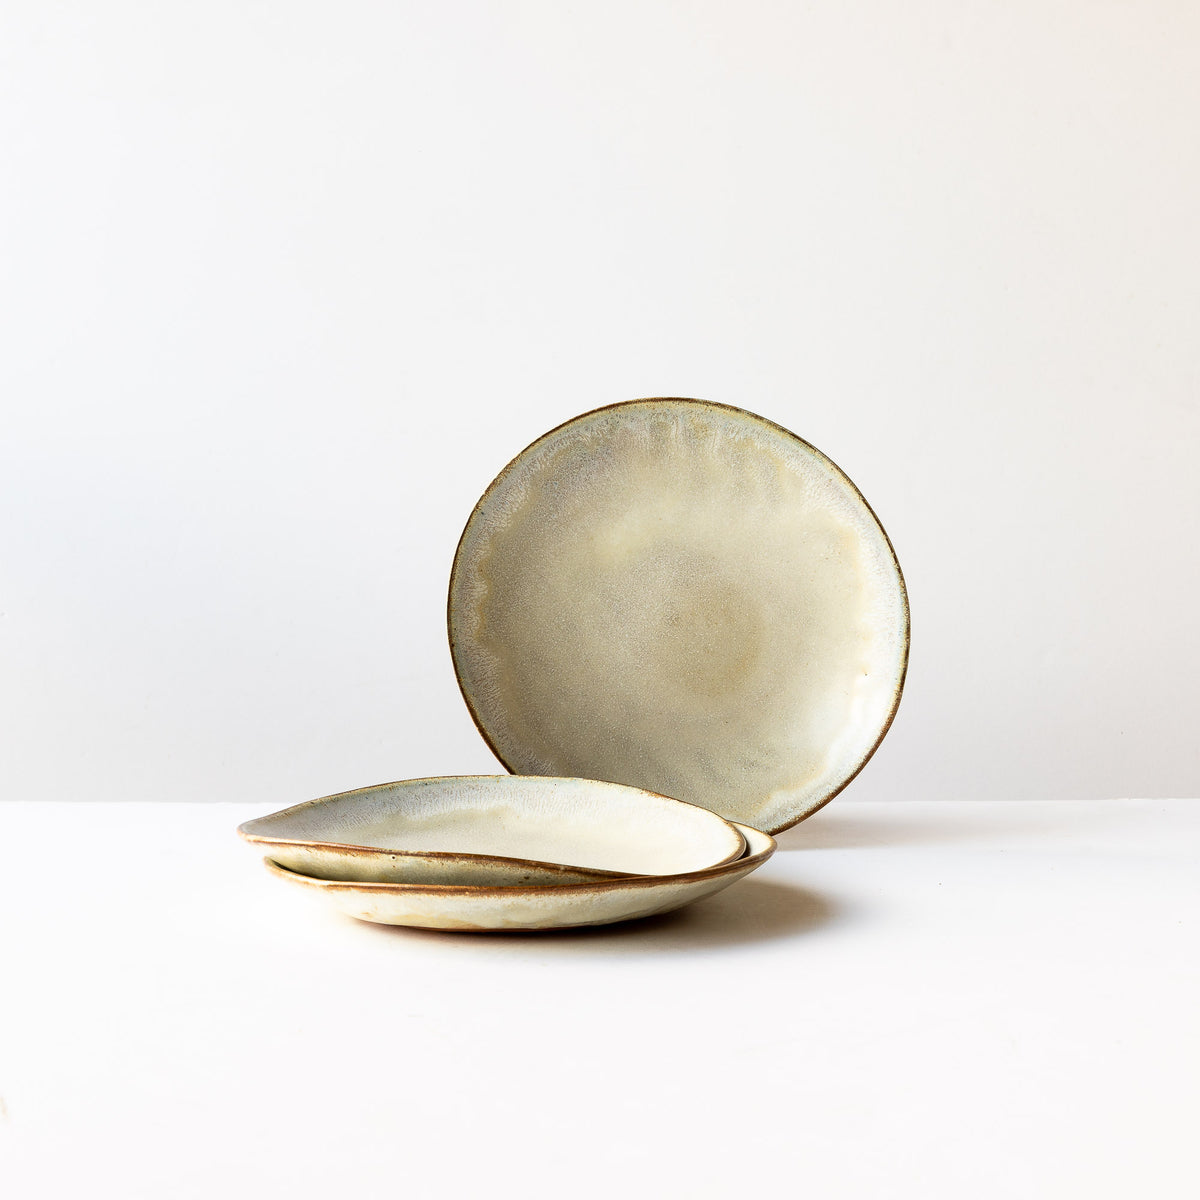 Three Medium Handbuilt Plates in Red Stoneware & Cream Glaze - Sold by Chic & Basta